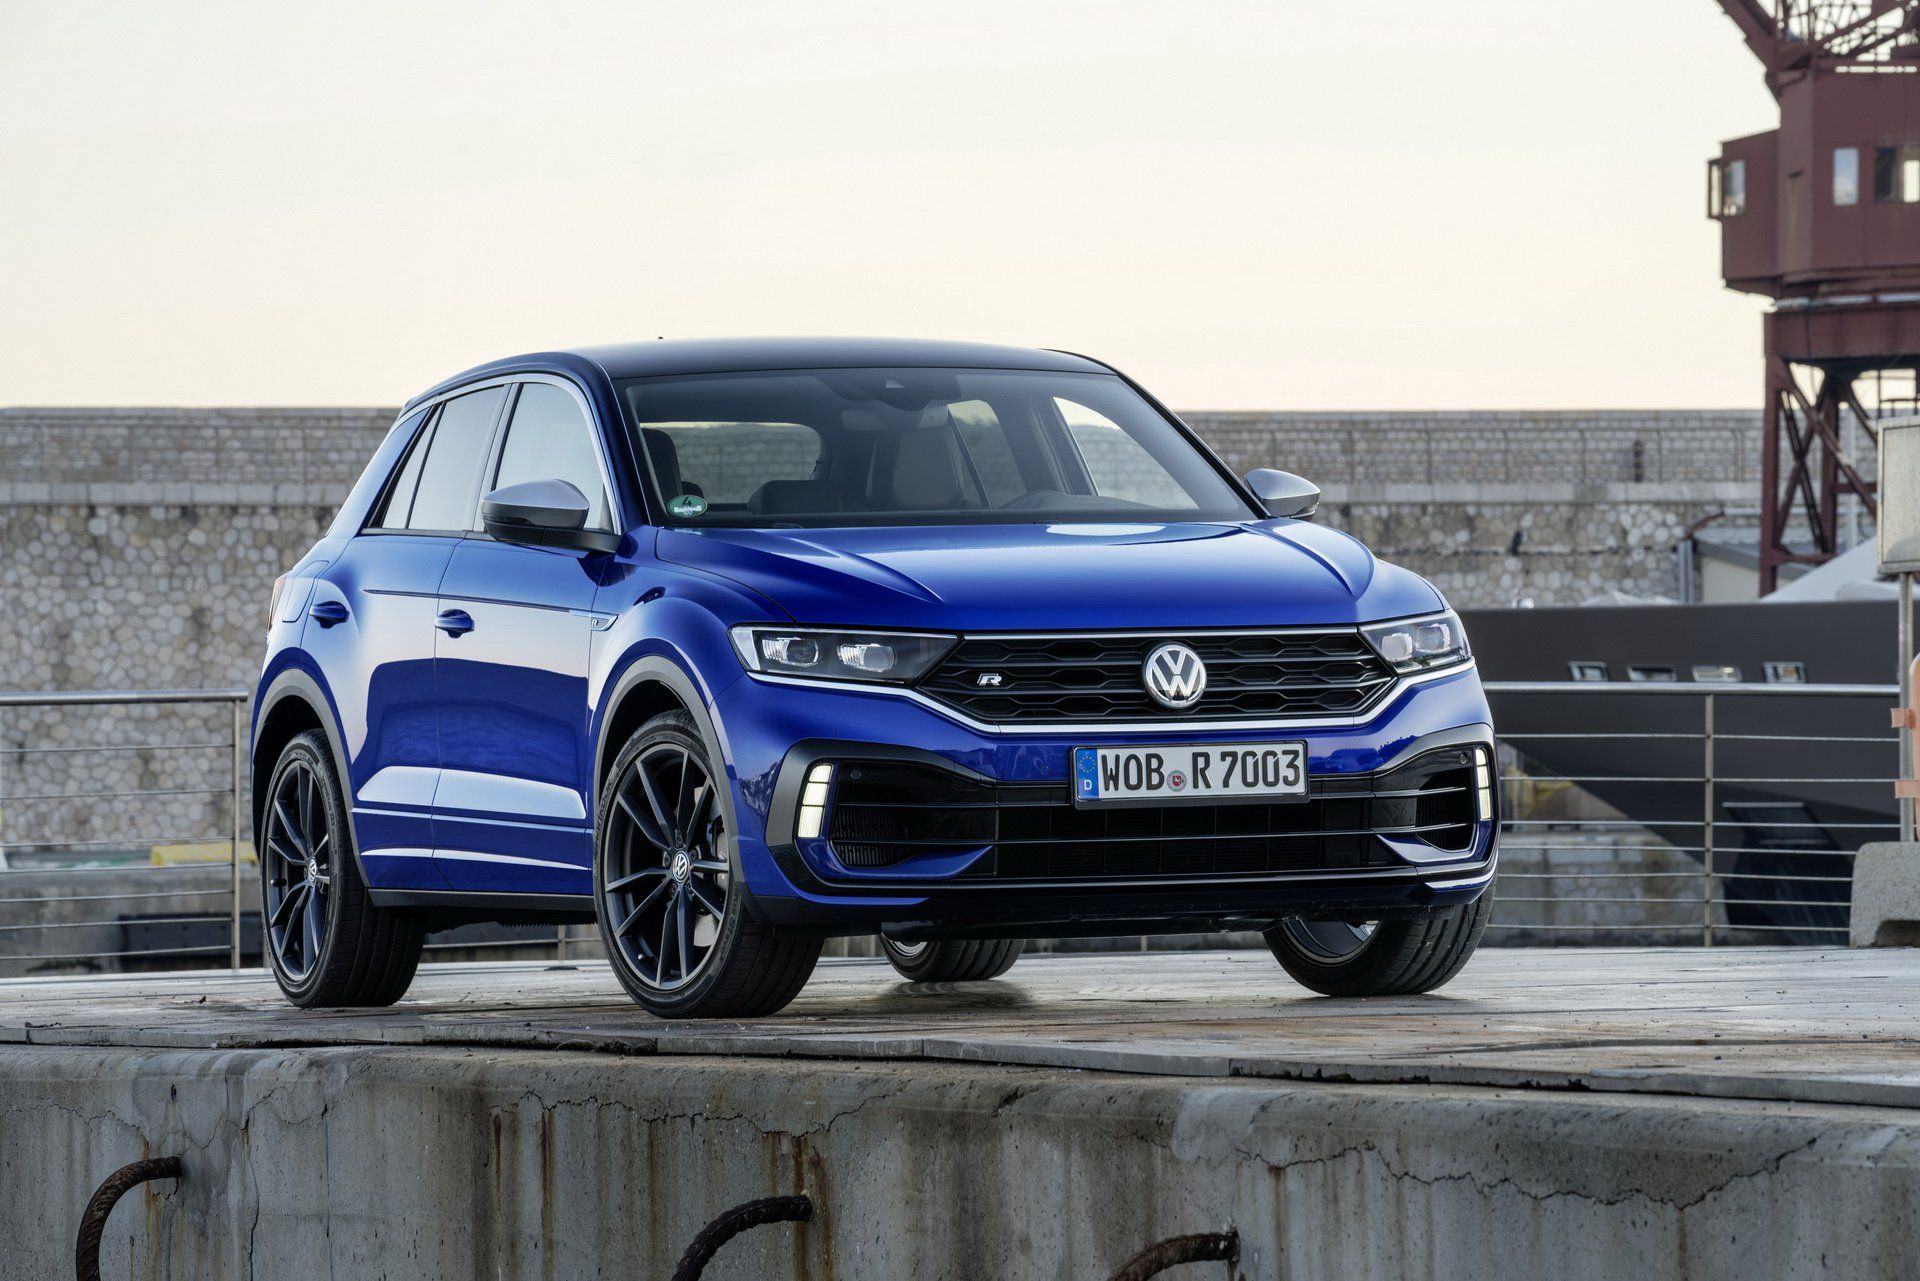 New Vw T Roc R Wants To Become The Default Hot Hatch On Stilts Carscoops Volkswagen Hot Hatch Car Volkswagen